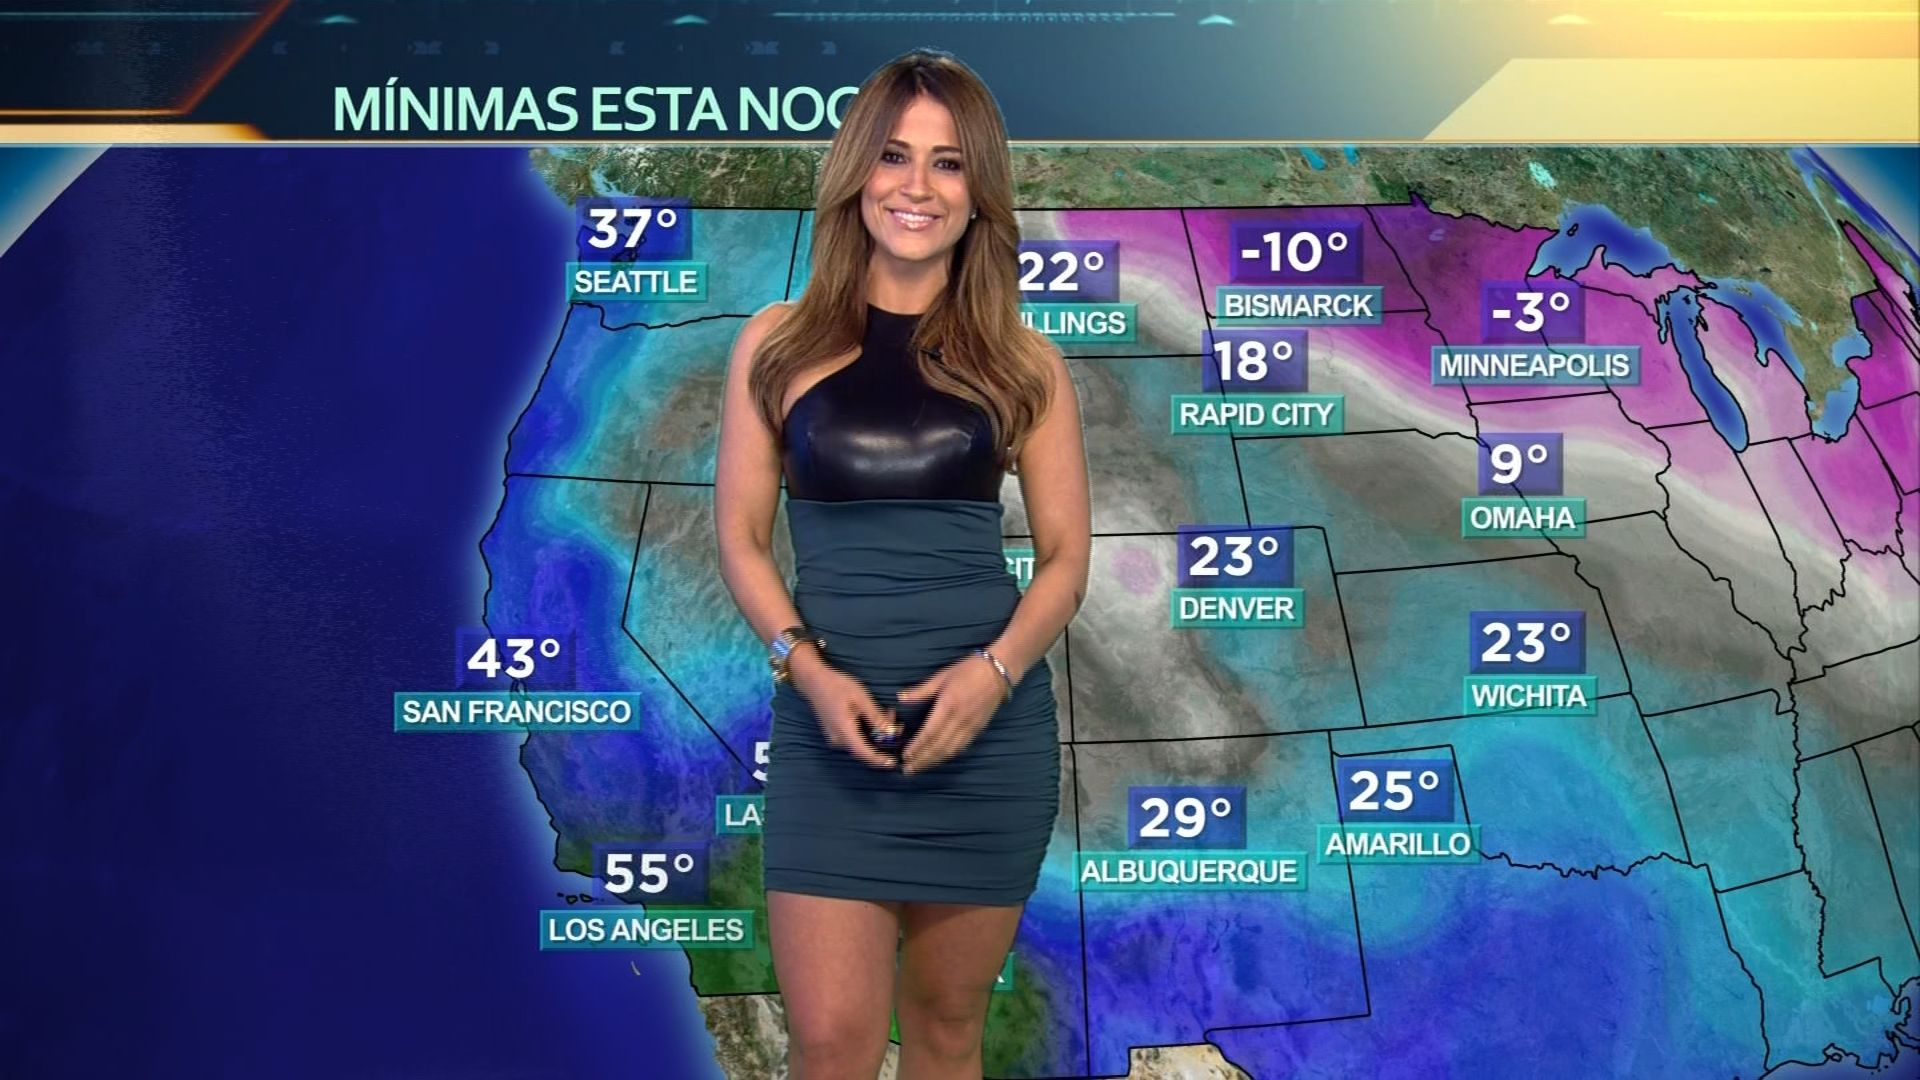 2. Jackie Guerrido Hottest weather girls